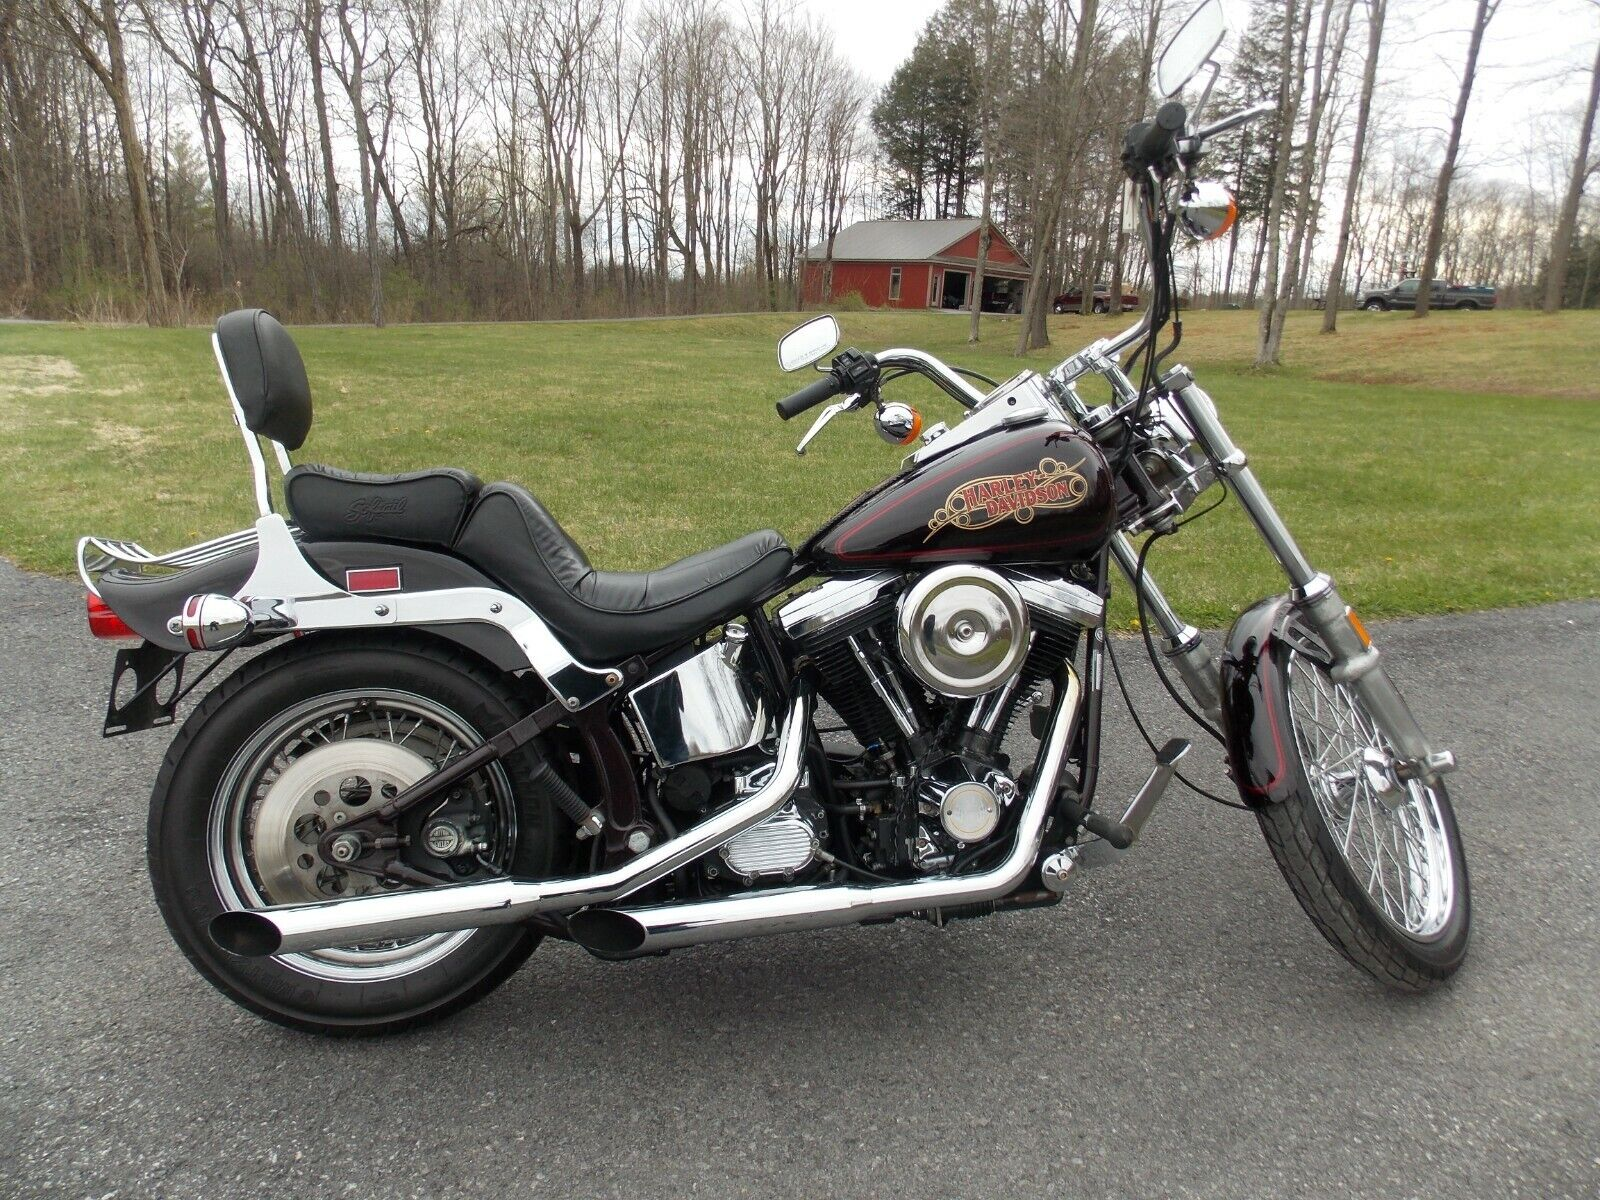 Picture of A 1988 Harley-Davidson Softail 1340